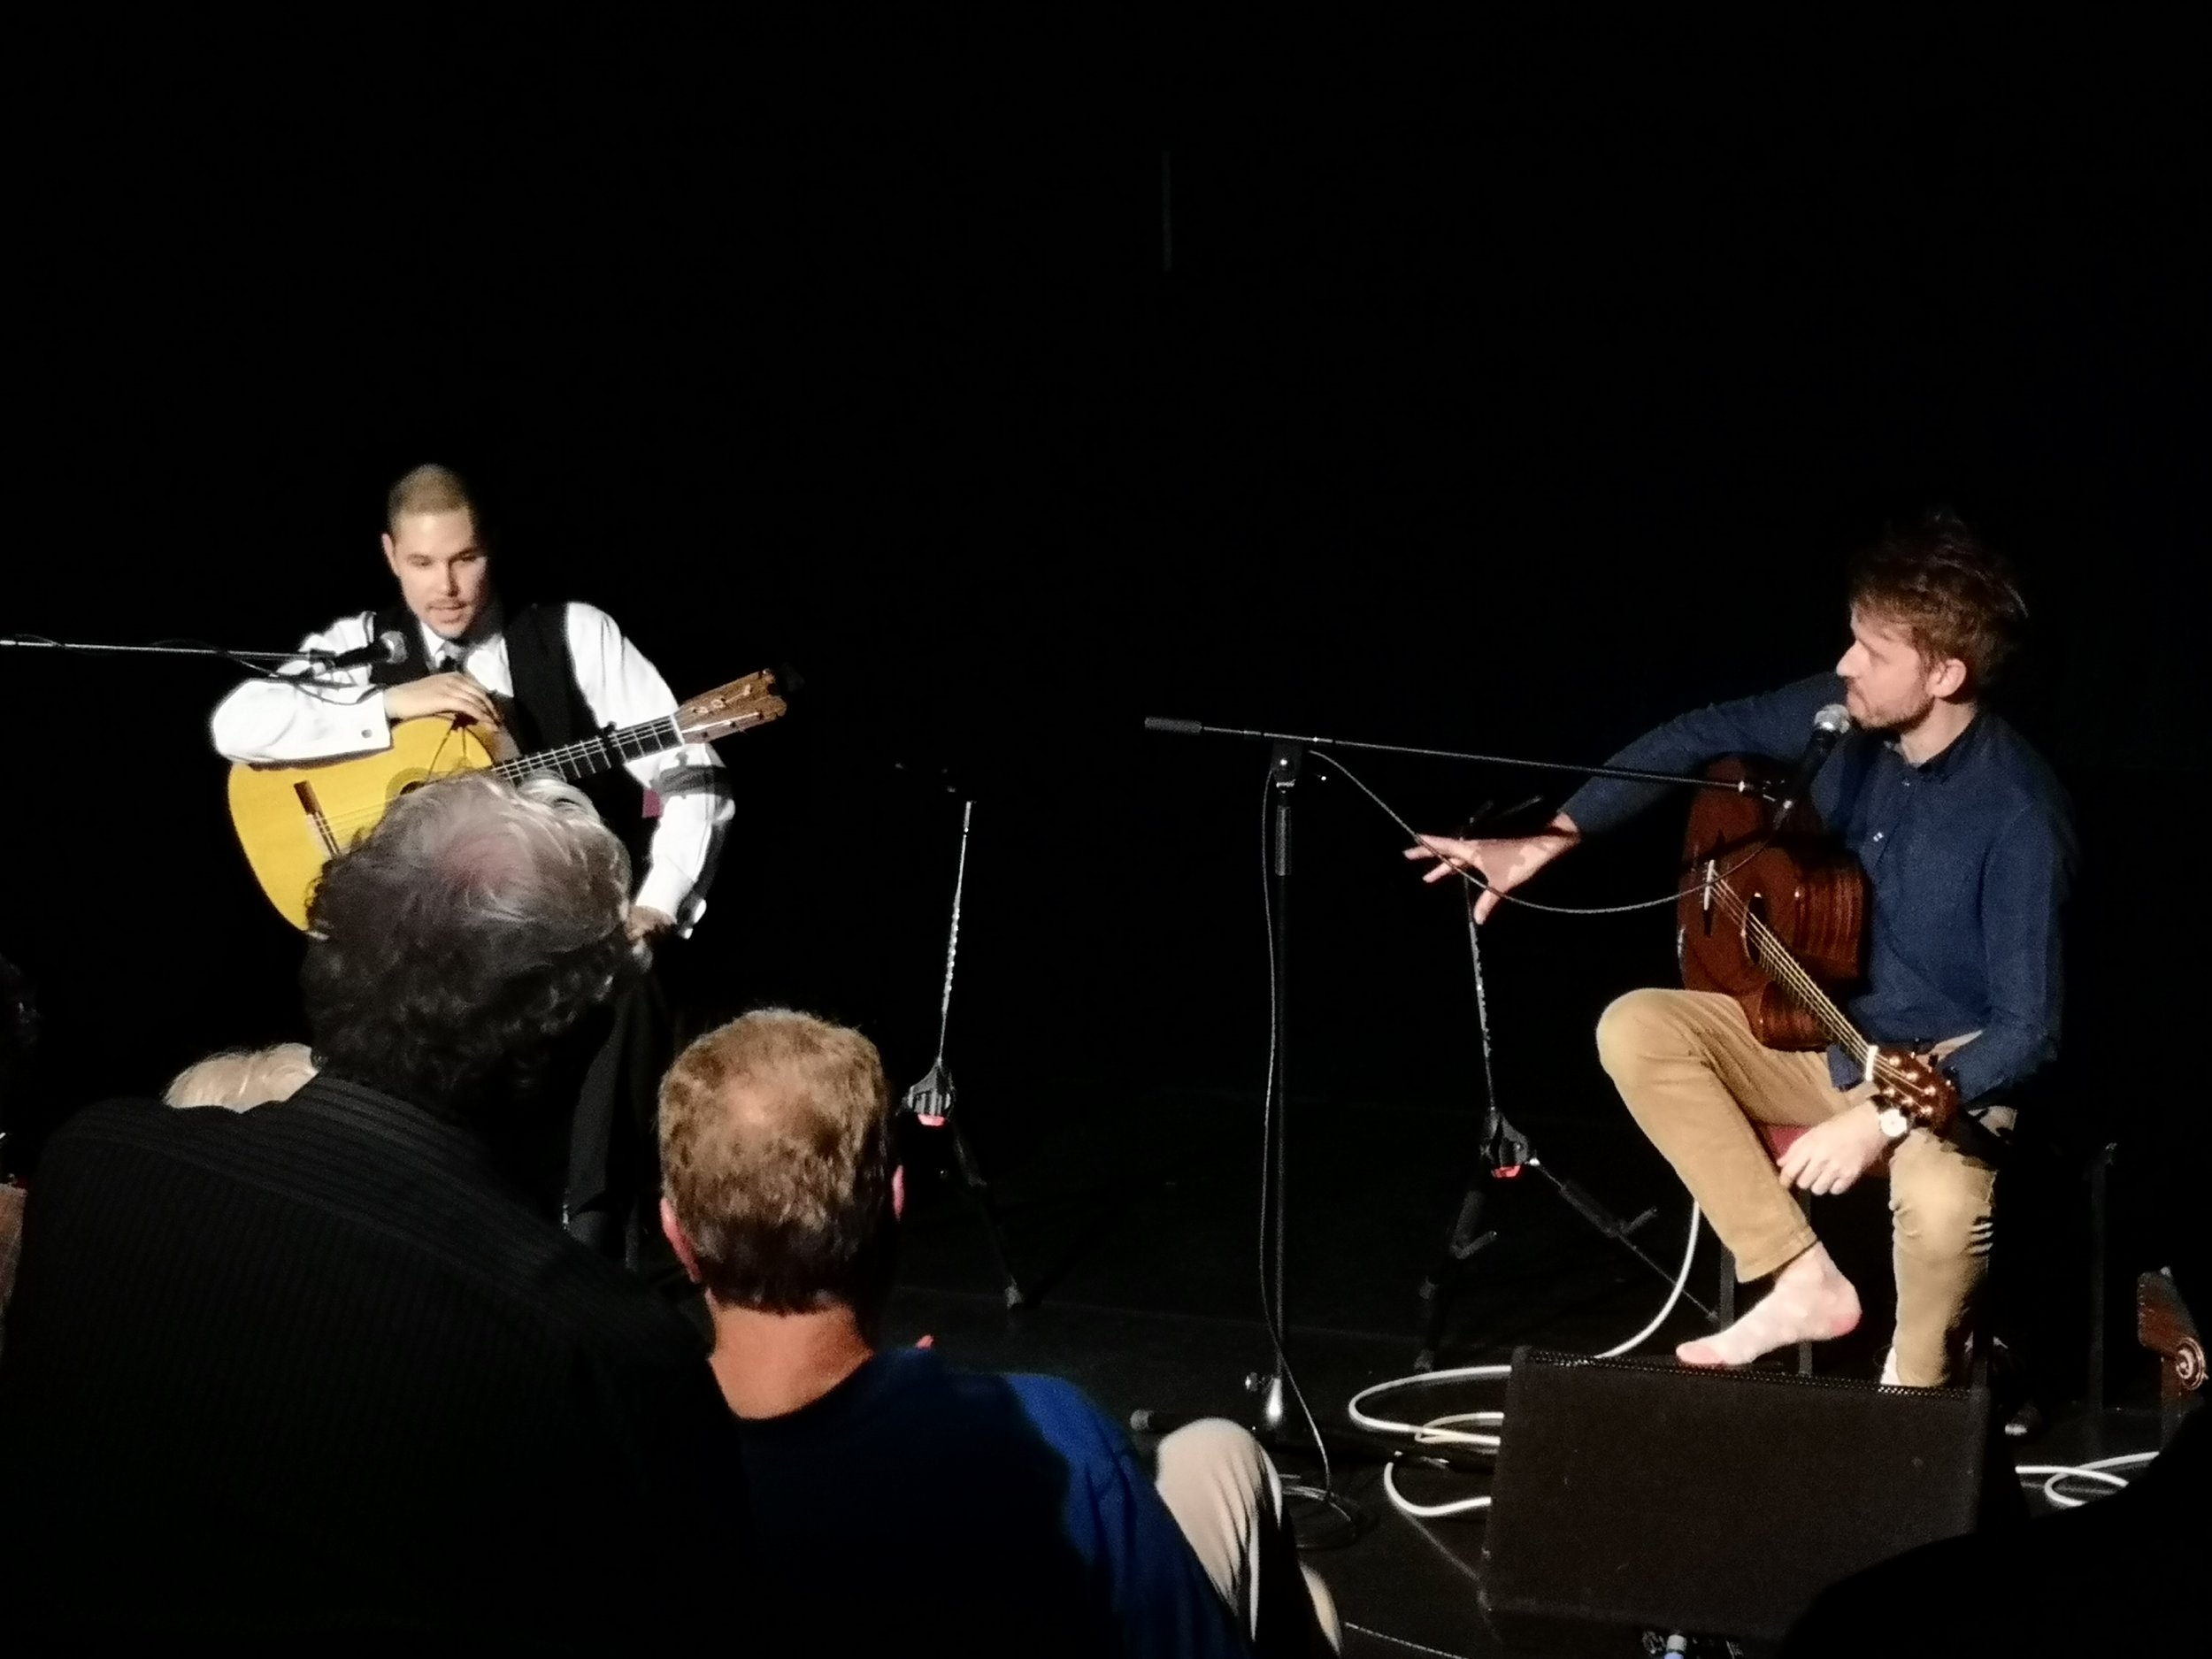 Samuel Moore performing with Will McNicol on Oct 10th in The Forest Arts Centre (New Milton)